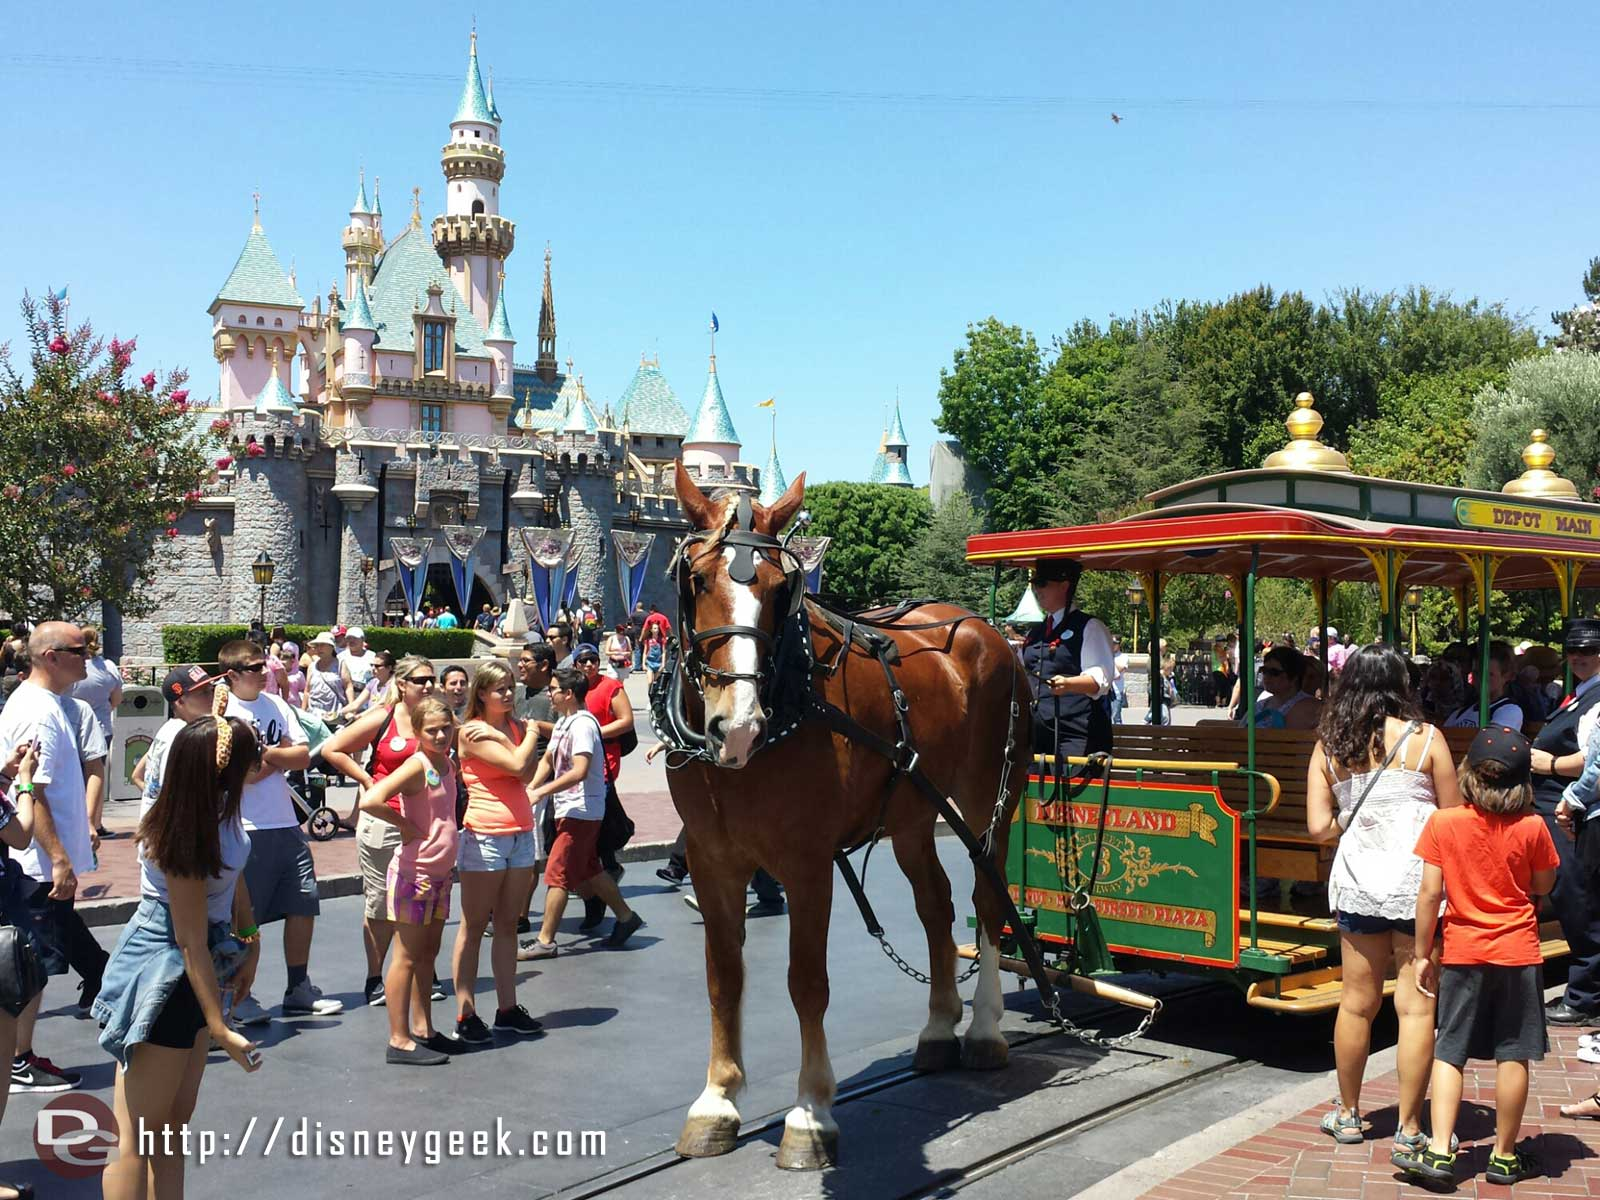 Main Street USA trolley being pulled by Sulley (the horse)